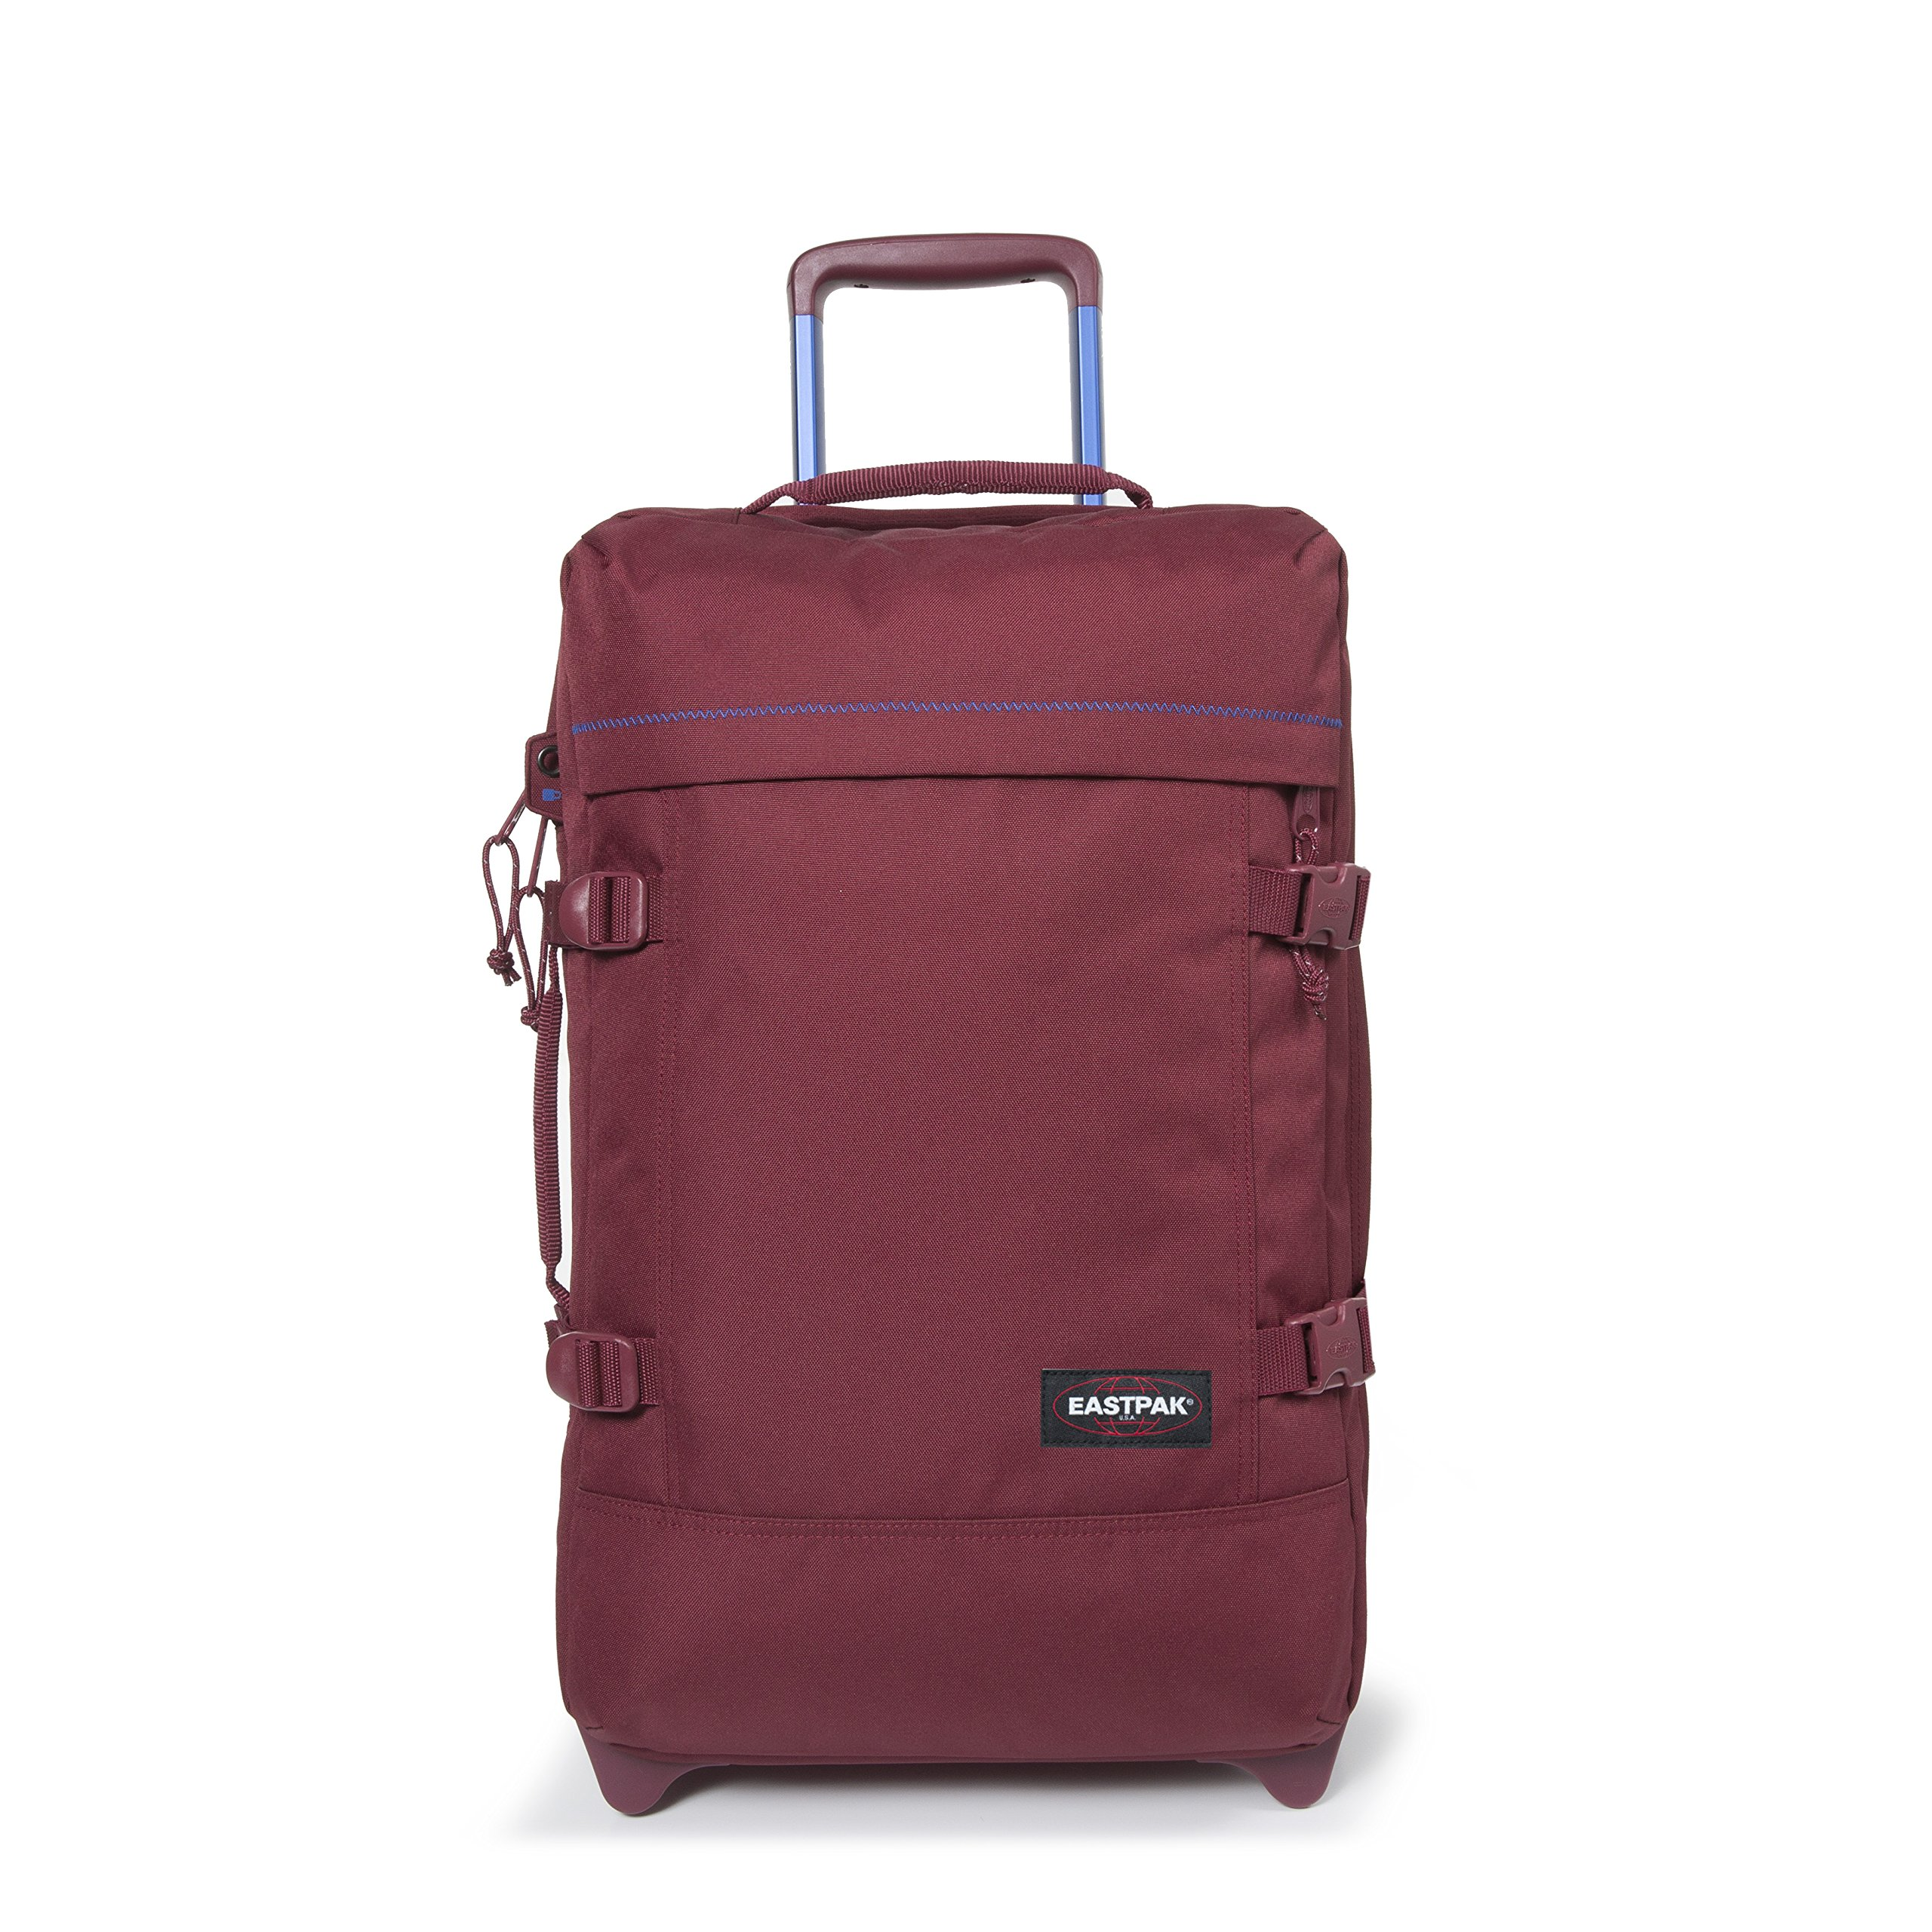 Eastpak Tranverz S Collection Stitch-Out Wheeled Luggage Merlot Stitched